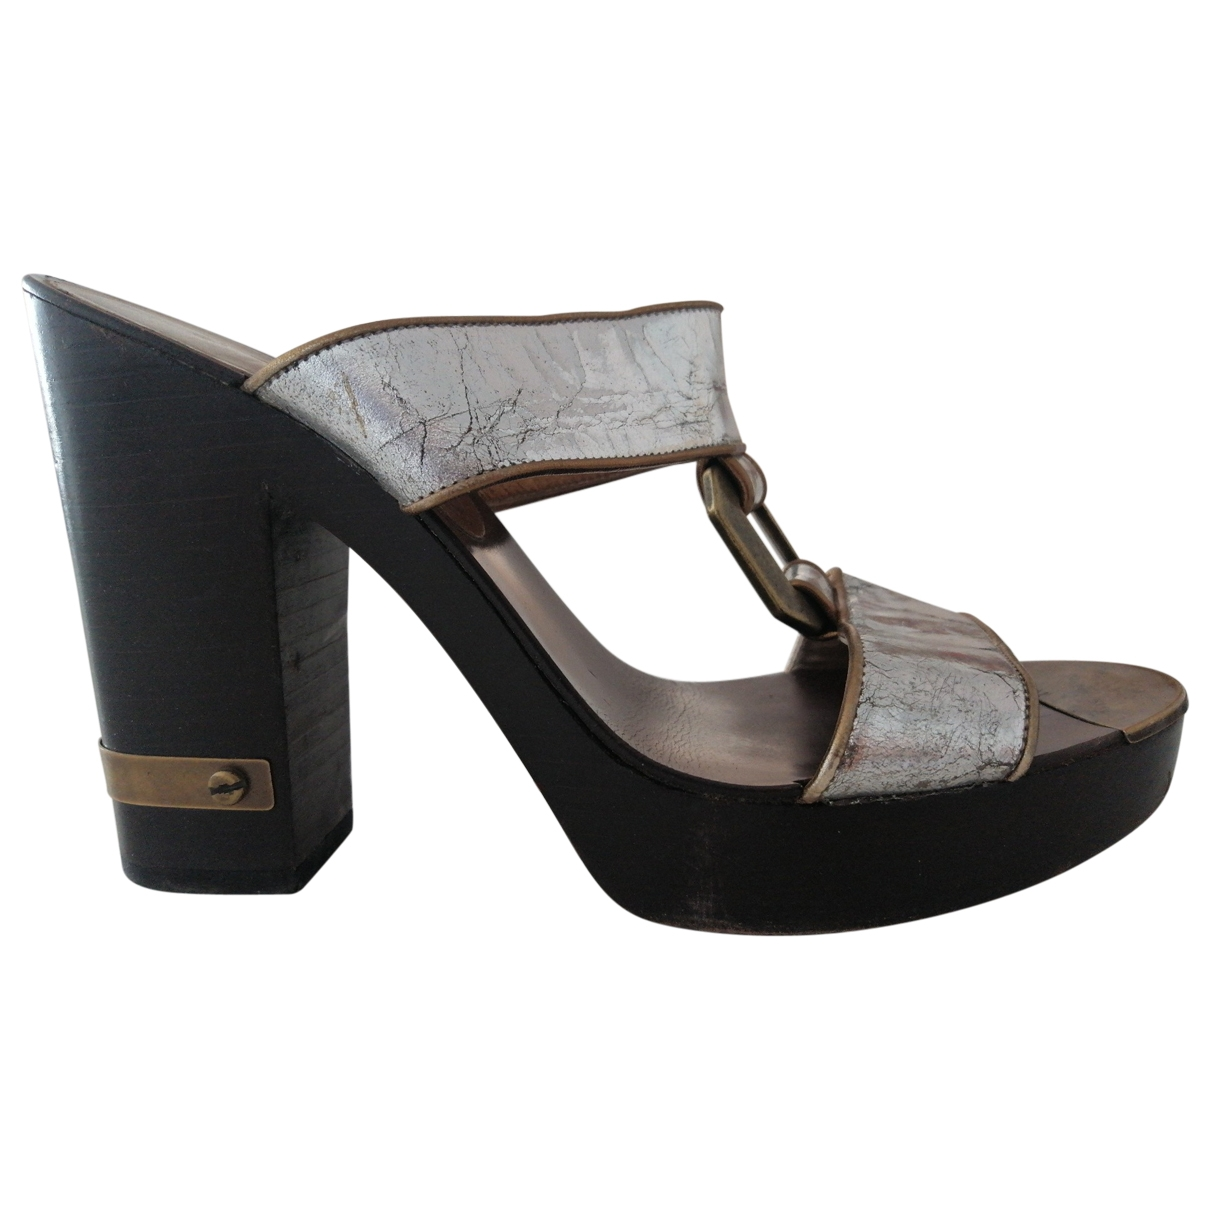 Marc By Marc Jacobs \N Silver Leather Sandals for Women 38.5 EU